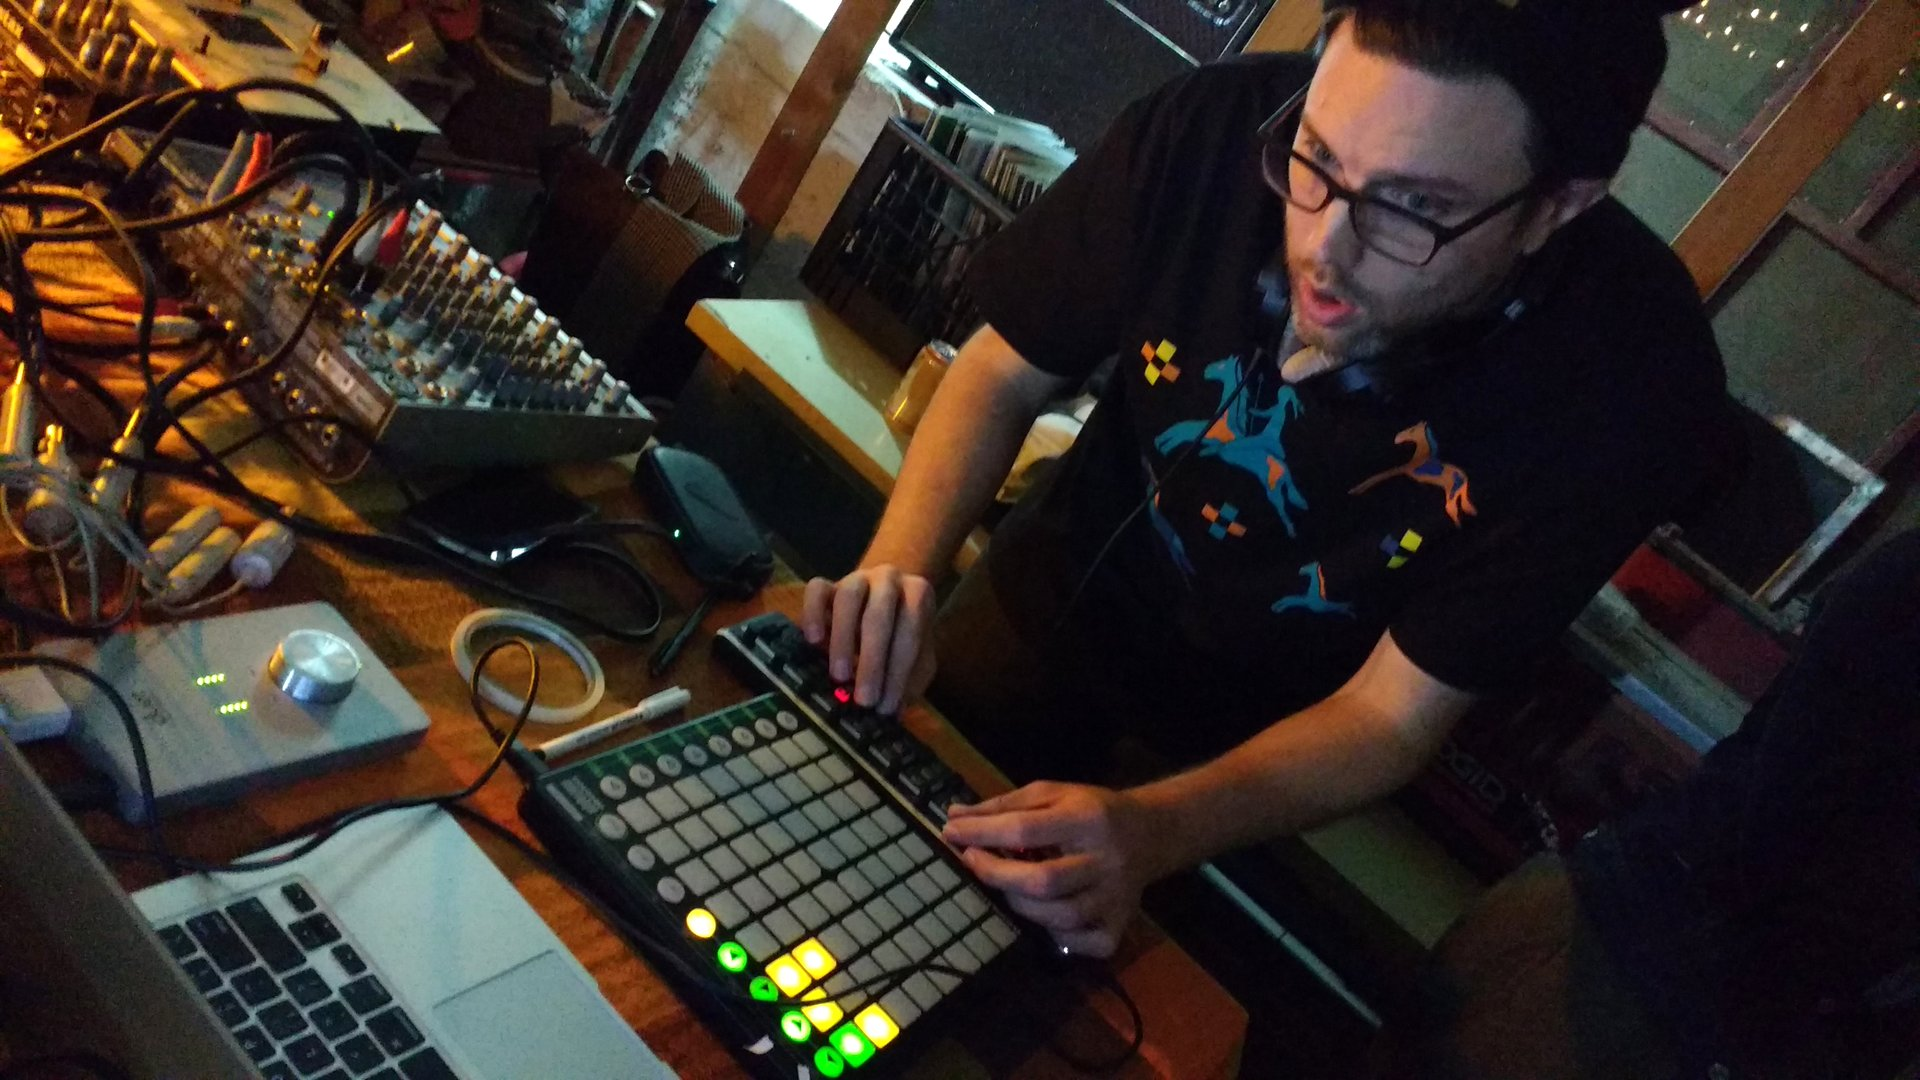 DJ using a sample board